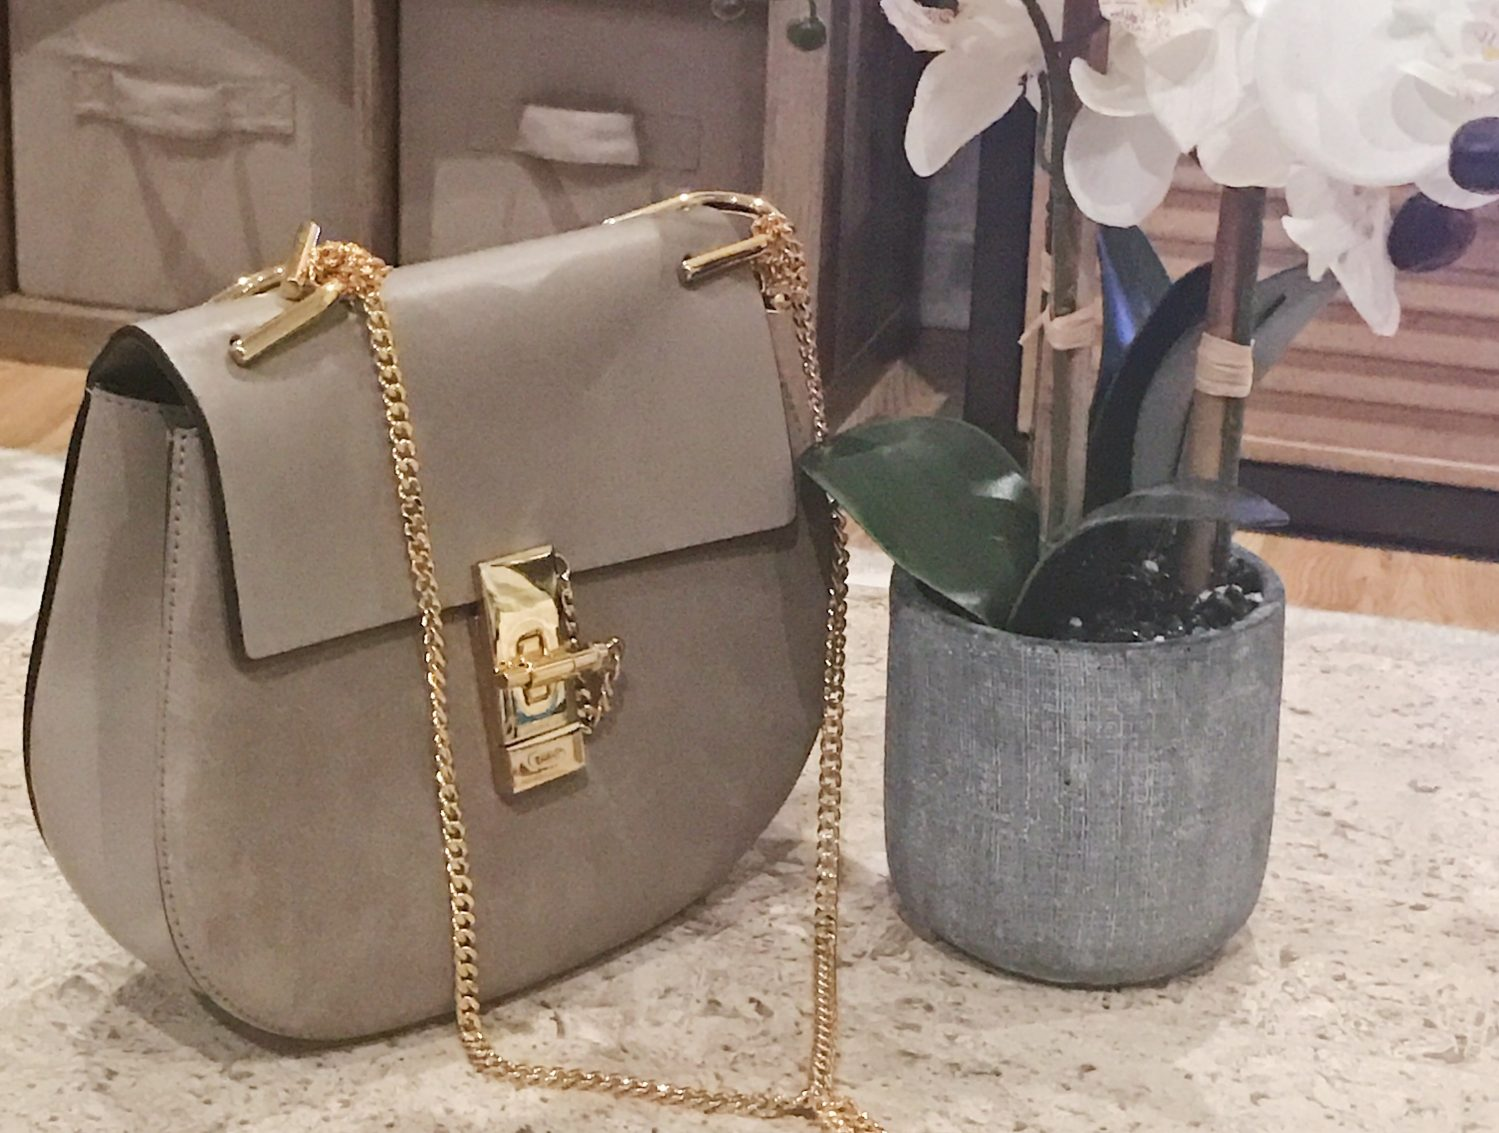 74663b8f Chloë Small Drew Bag Review & 6 Month Wear and Tear | Sun Kissed Violet